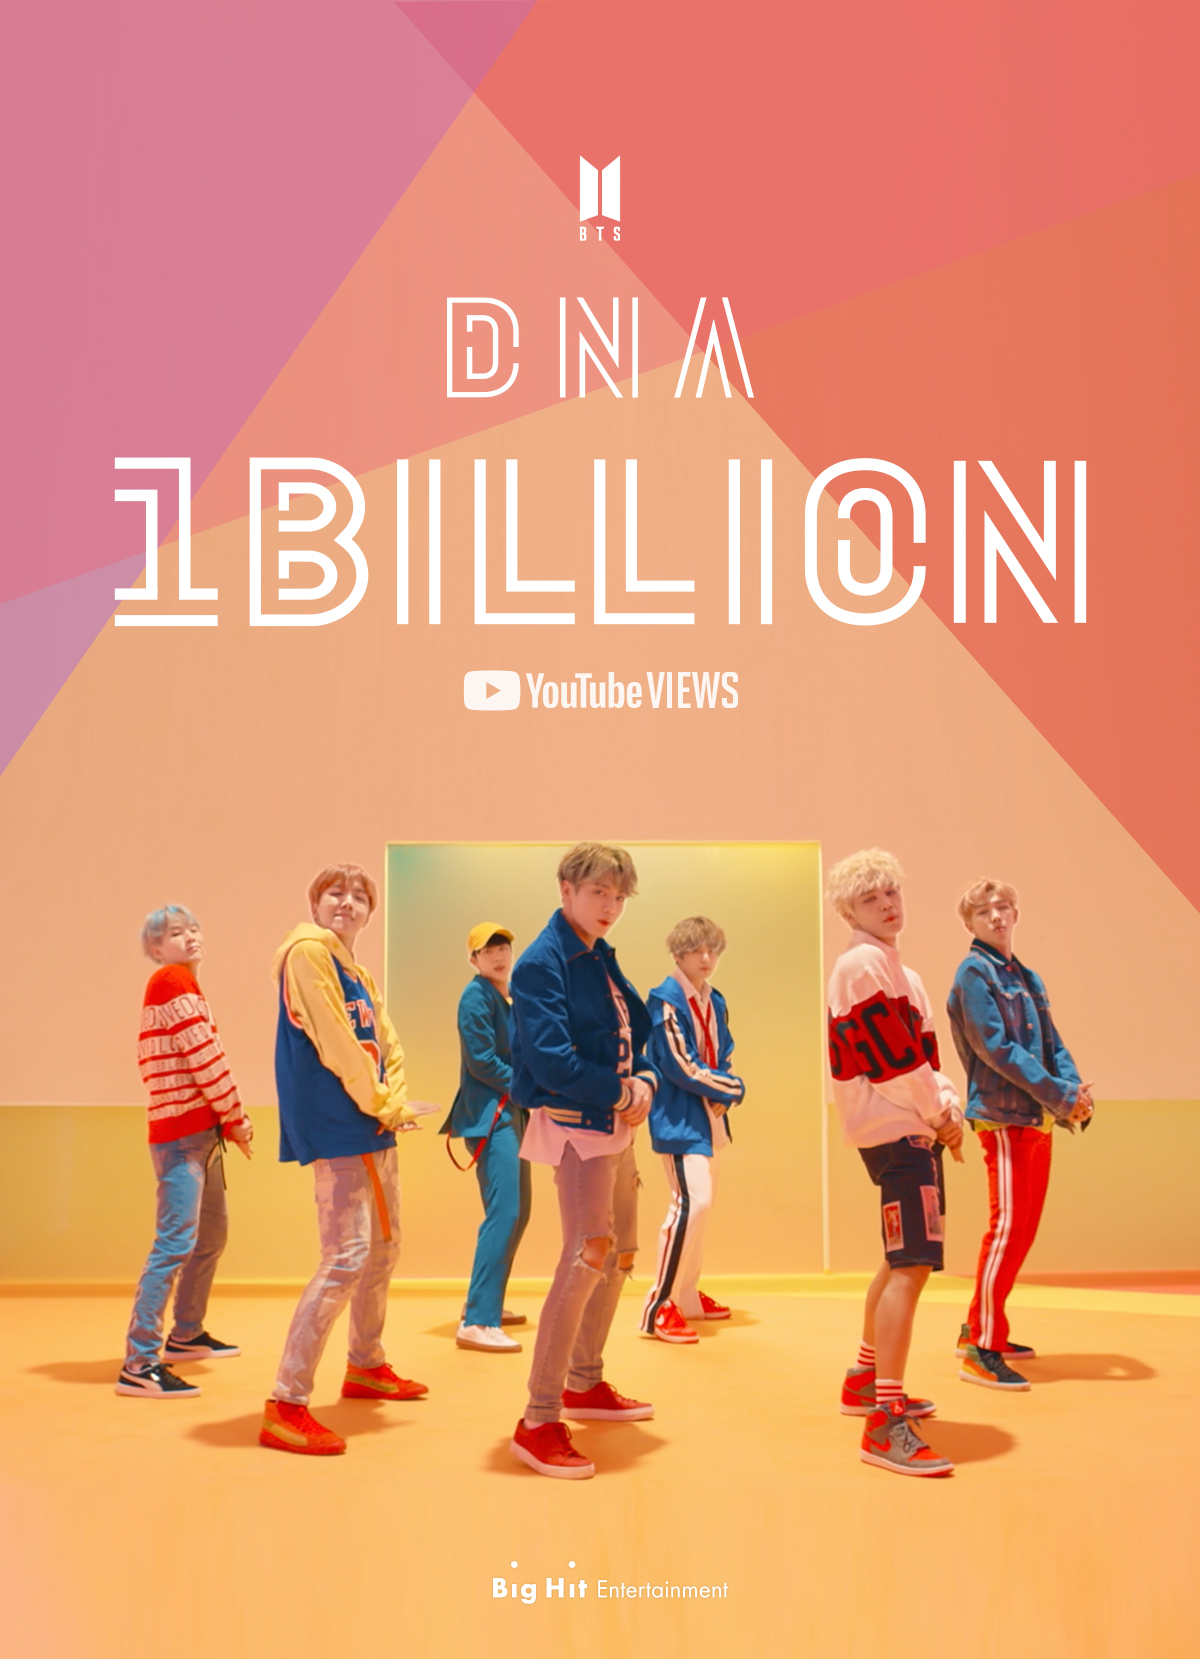 Bts Dna Music Video Tops 1b Youtube Views